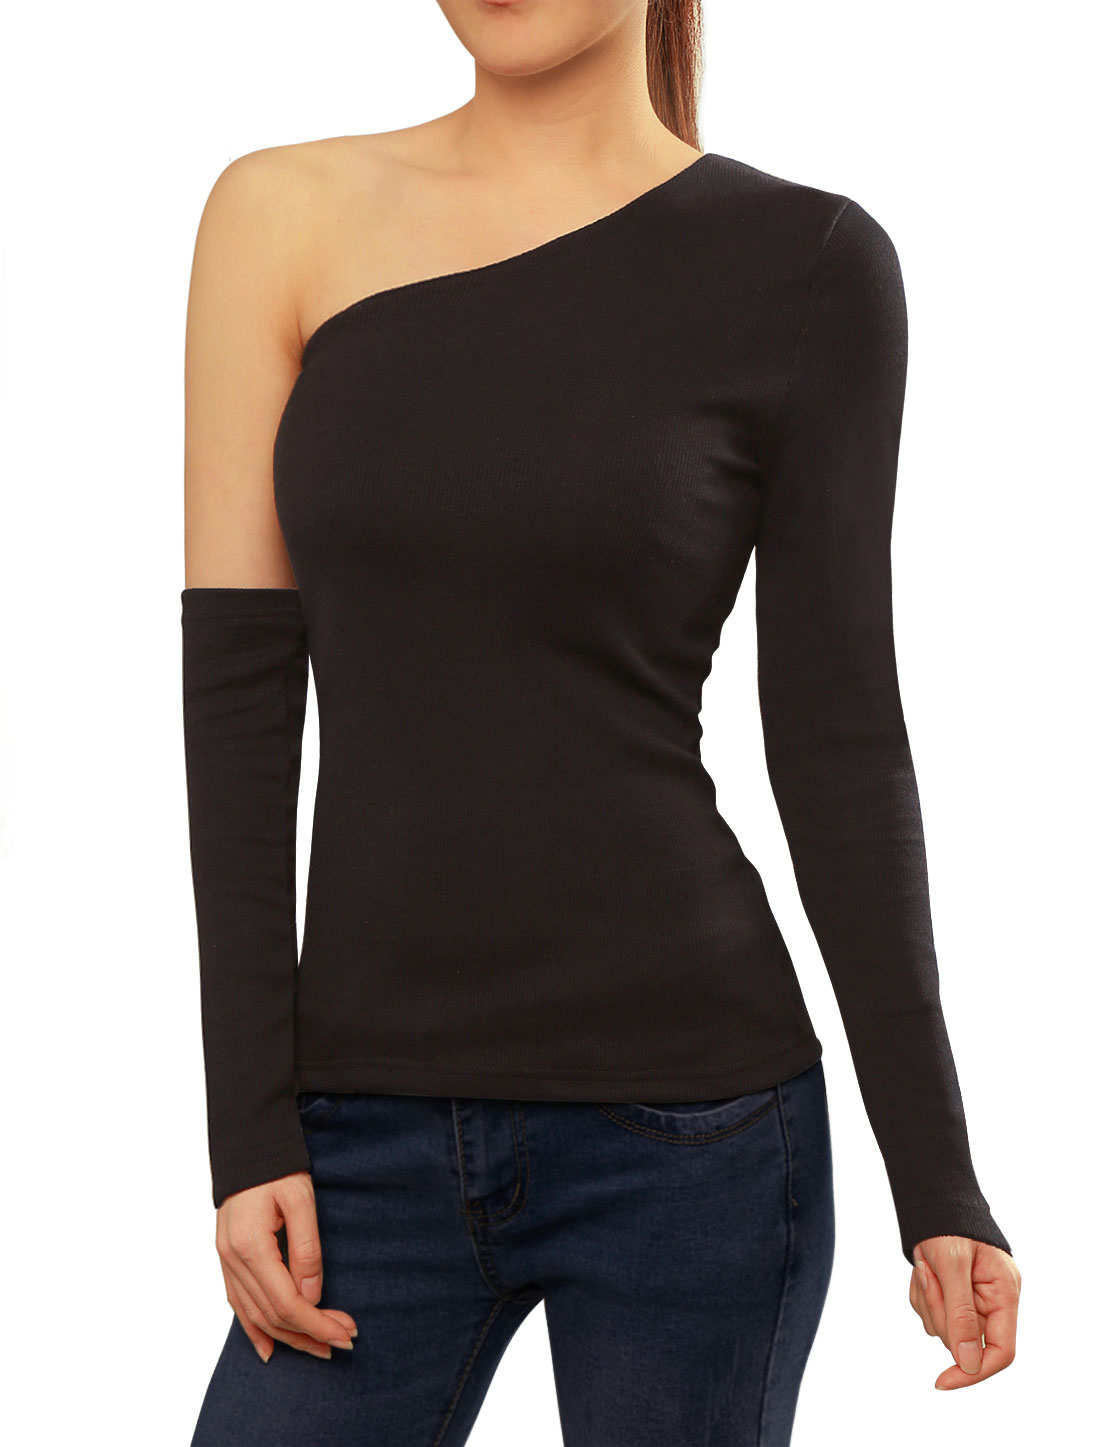 Women One Shoulder Ribbed Slim Fit Casual Tee w Arm Warmer Black XS